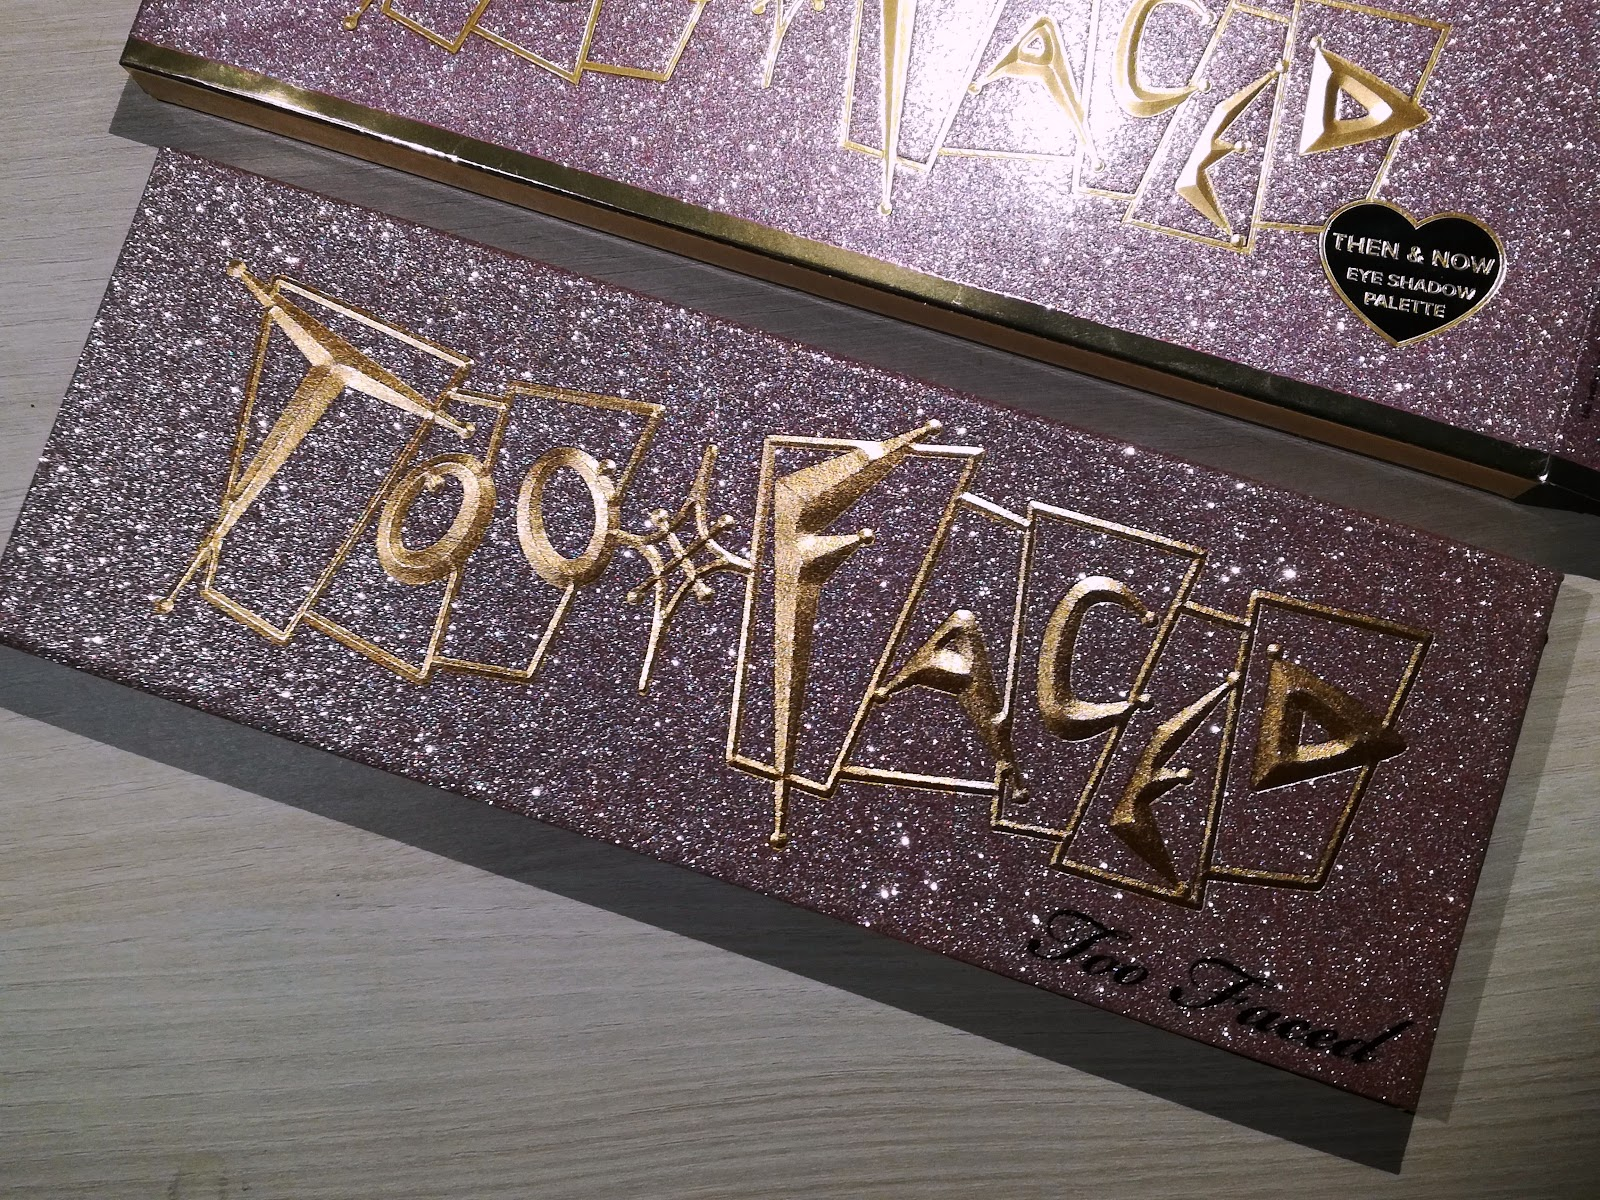 TOO FACED THEN & NOW